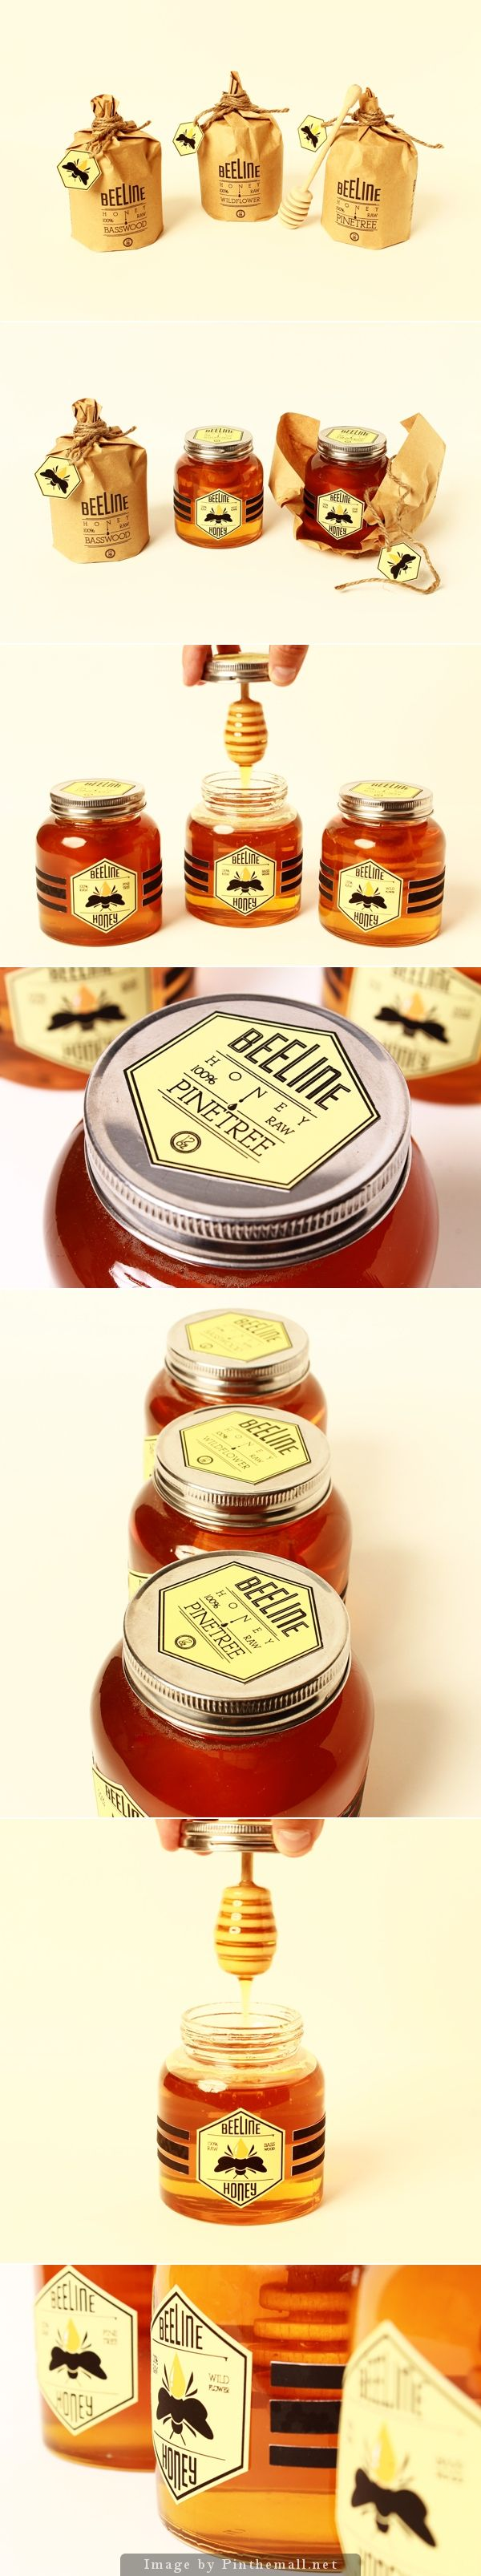 Beeline honey packaging